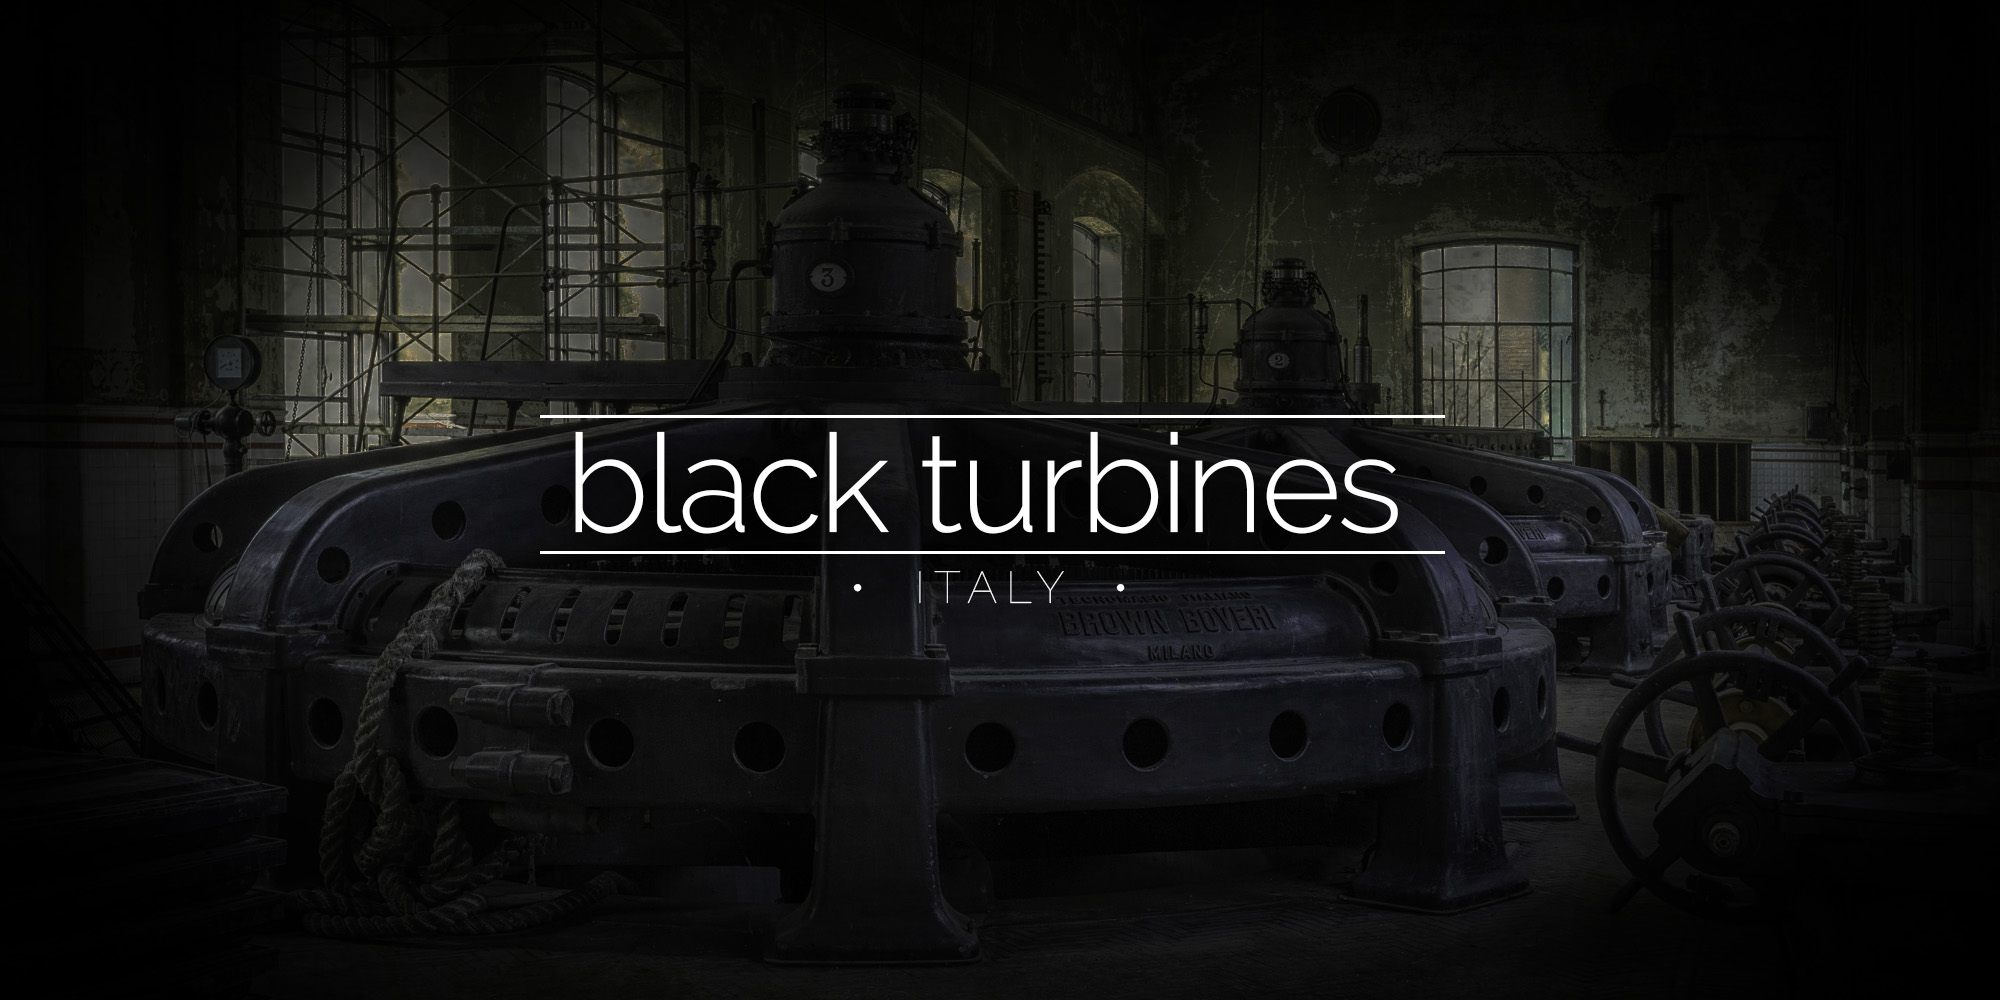 The Black Turbines, Italy